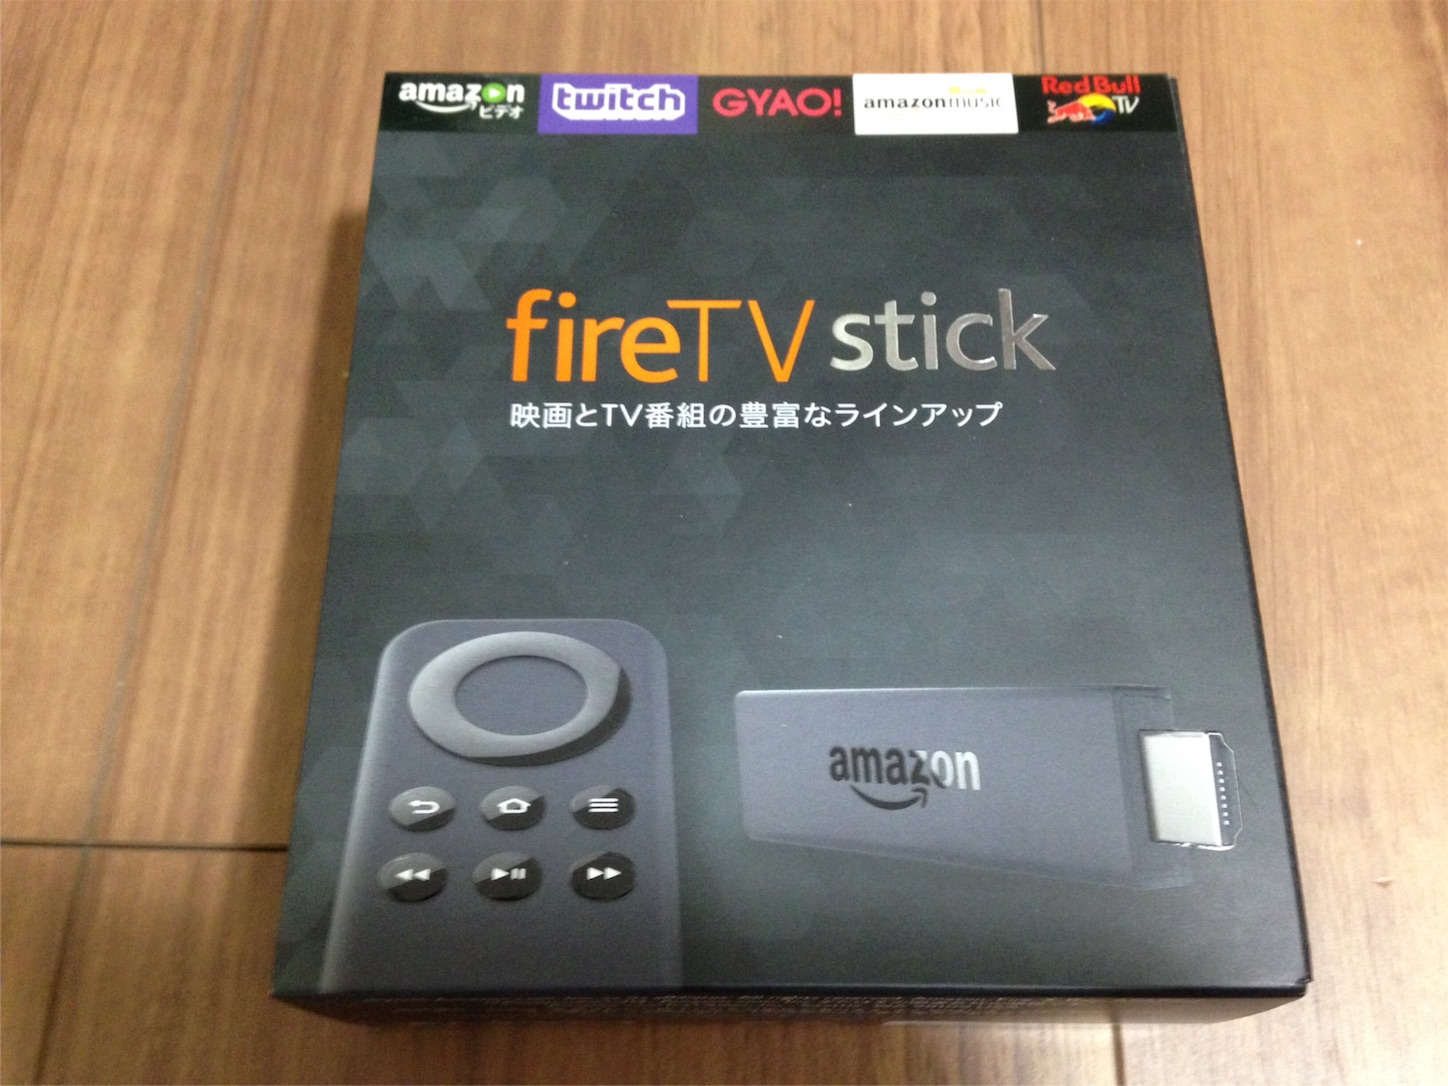 Amazon fire TV stickパッケージ